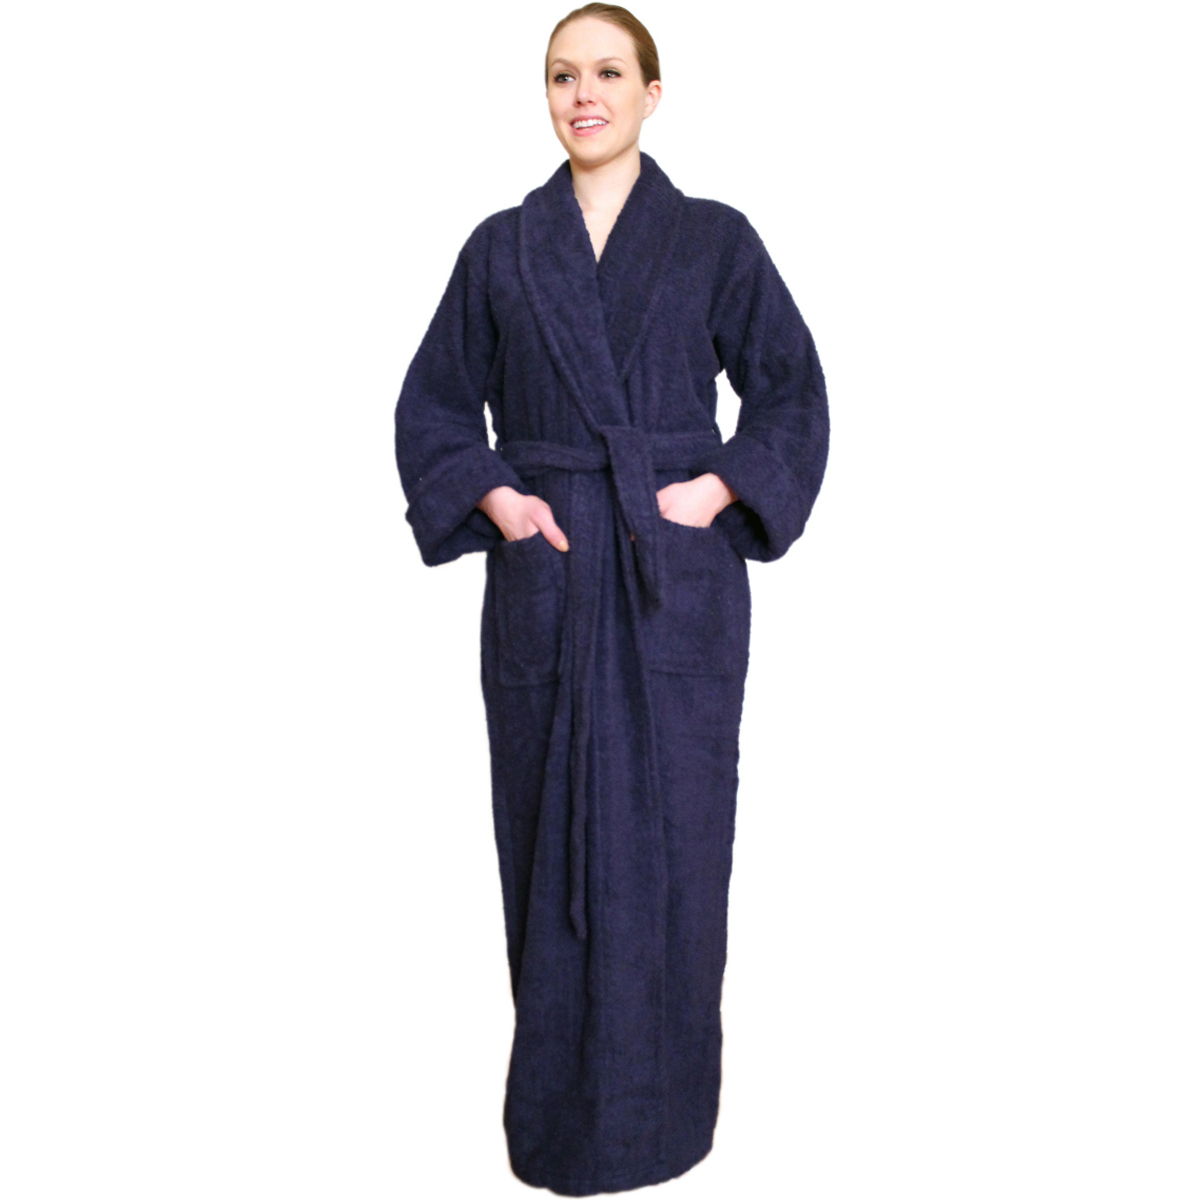 Full Length Terry Cloth Robe Long Sleeves 100 Cotton